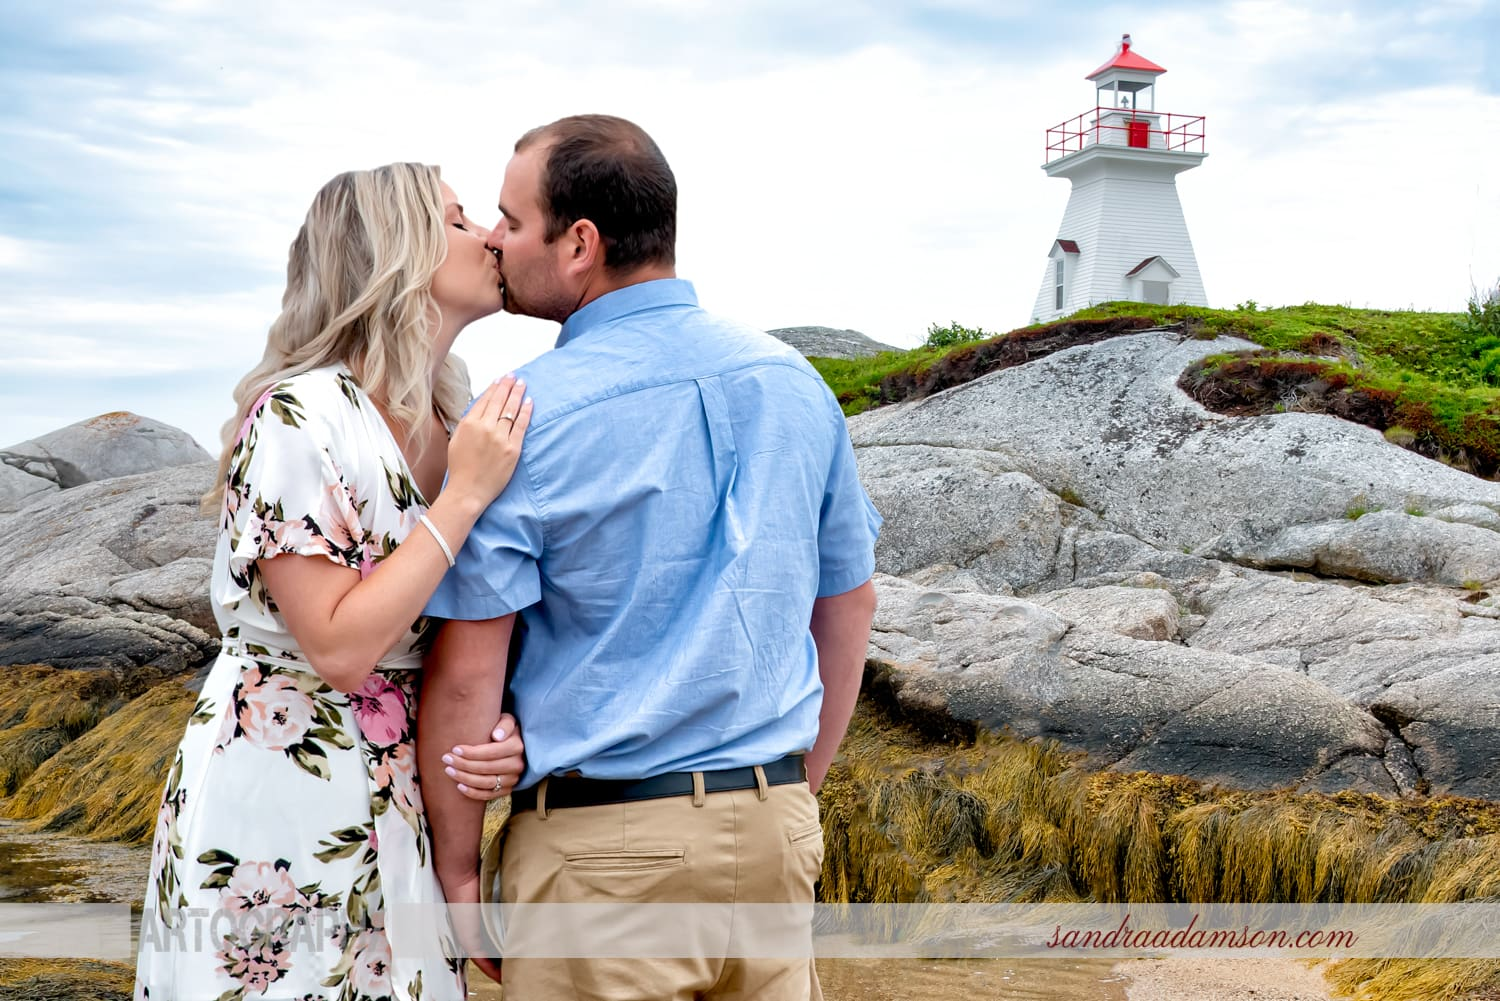 halifax ns wedding photographer, halifax wedding photographers, photography, photographer, videography, videographer, bride, groom, photography, photographer, engagement, engaged, bride to be, couple, love, sandra adamson studios, artistic, creative, story telling, candid, rich colors, strong contrast, documentary, fine art, sandy cove, lighthouse, engagement, engaged